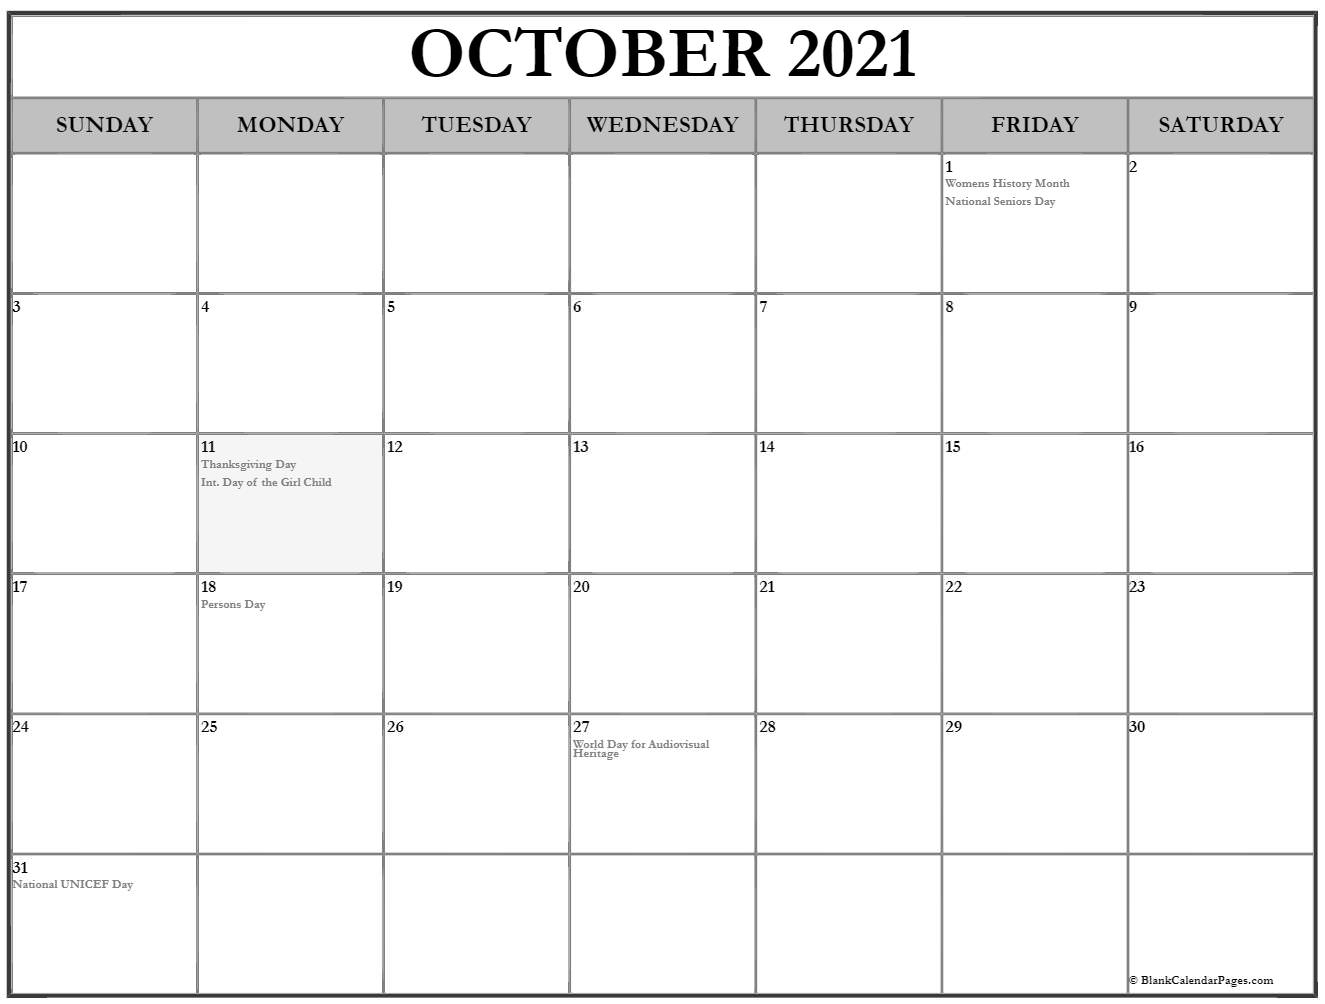 Collection Of October 2021 Calendars With Holidays